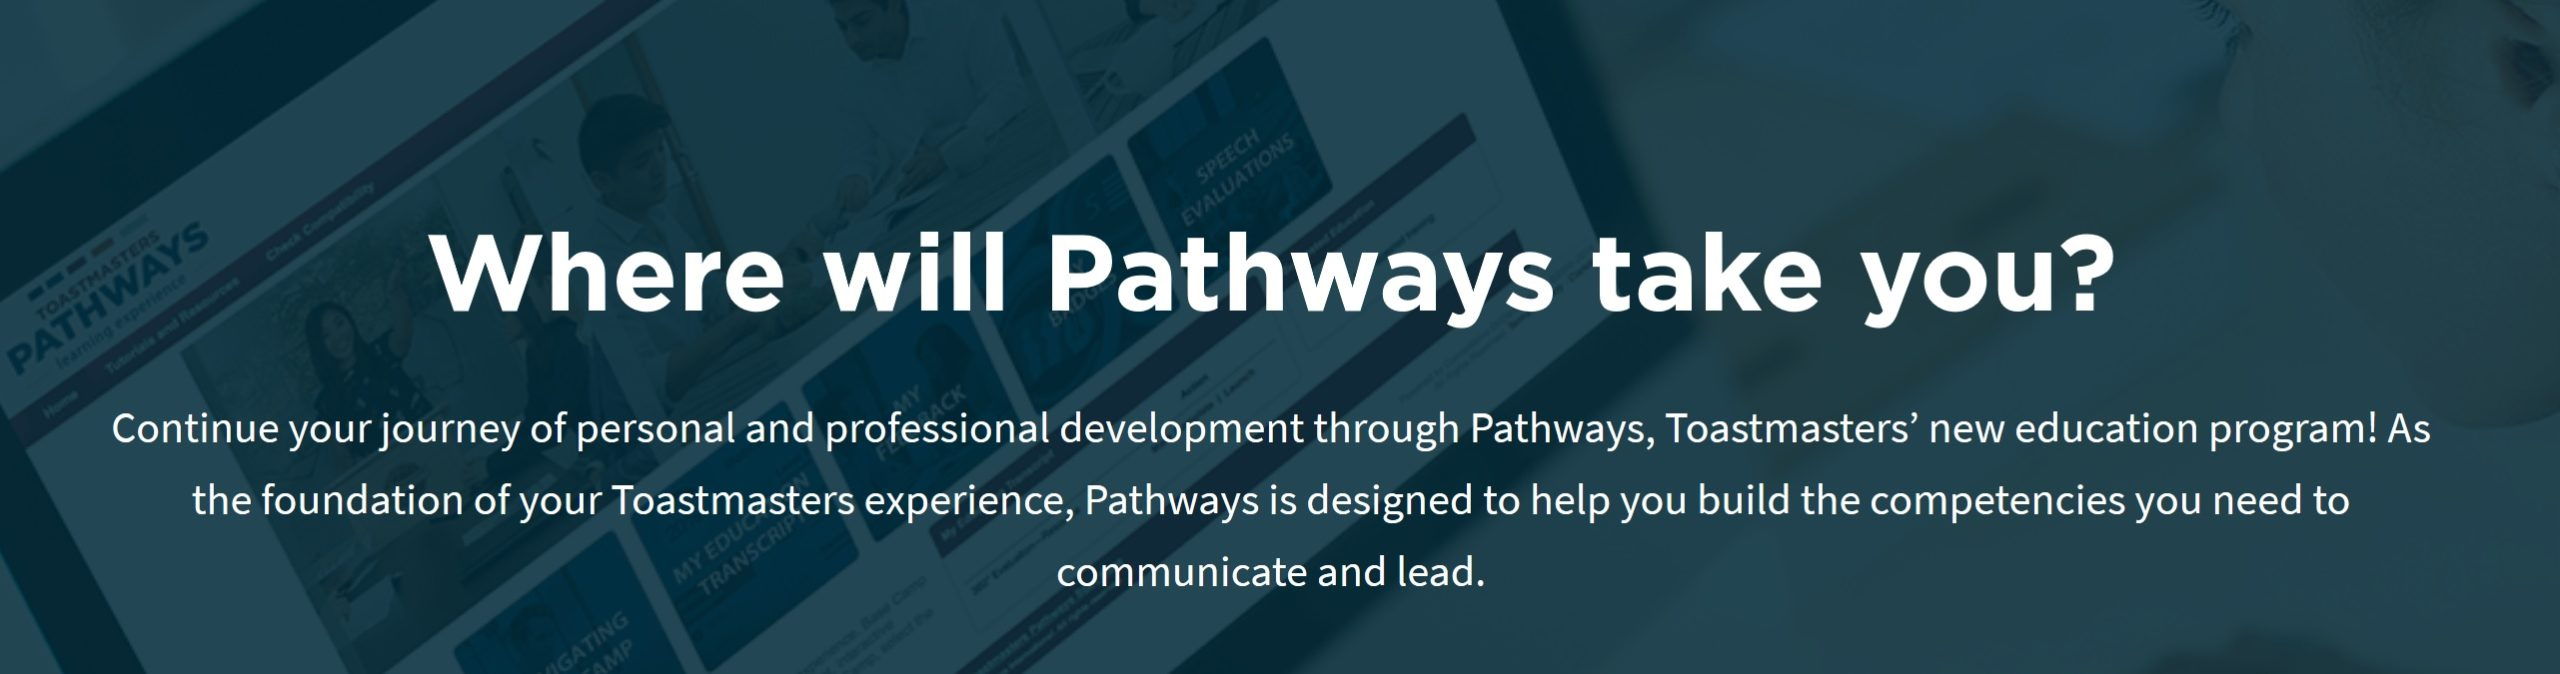 https://www.toastmasters.org/pathways-overview